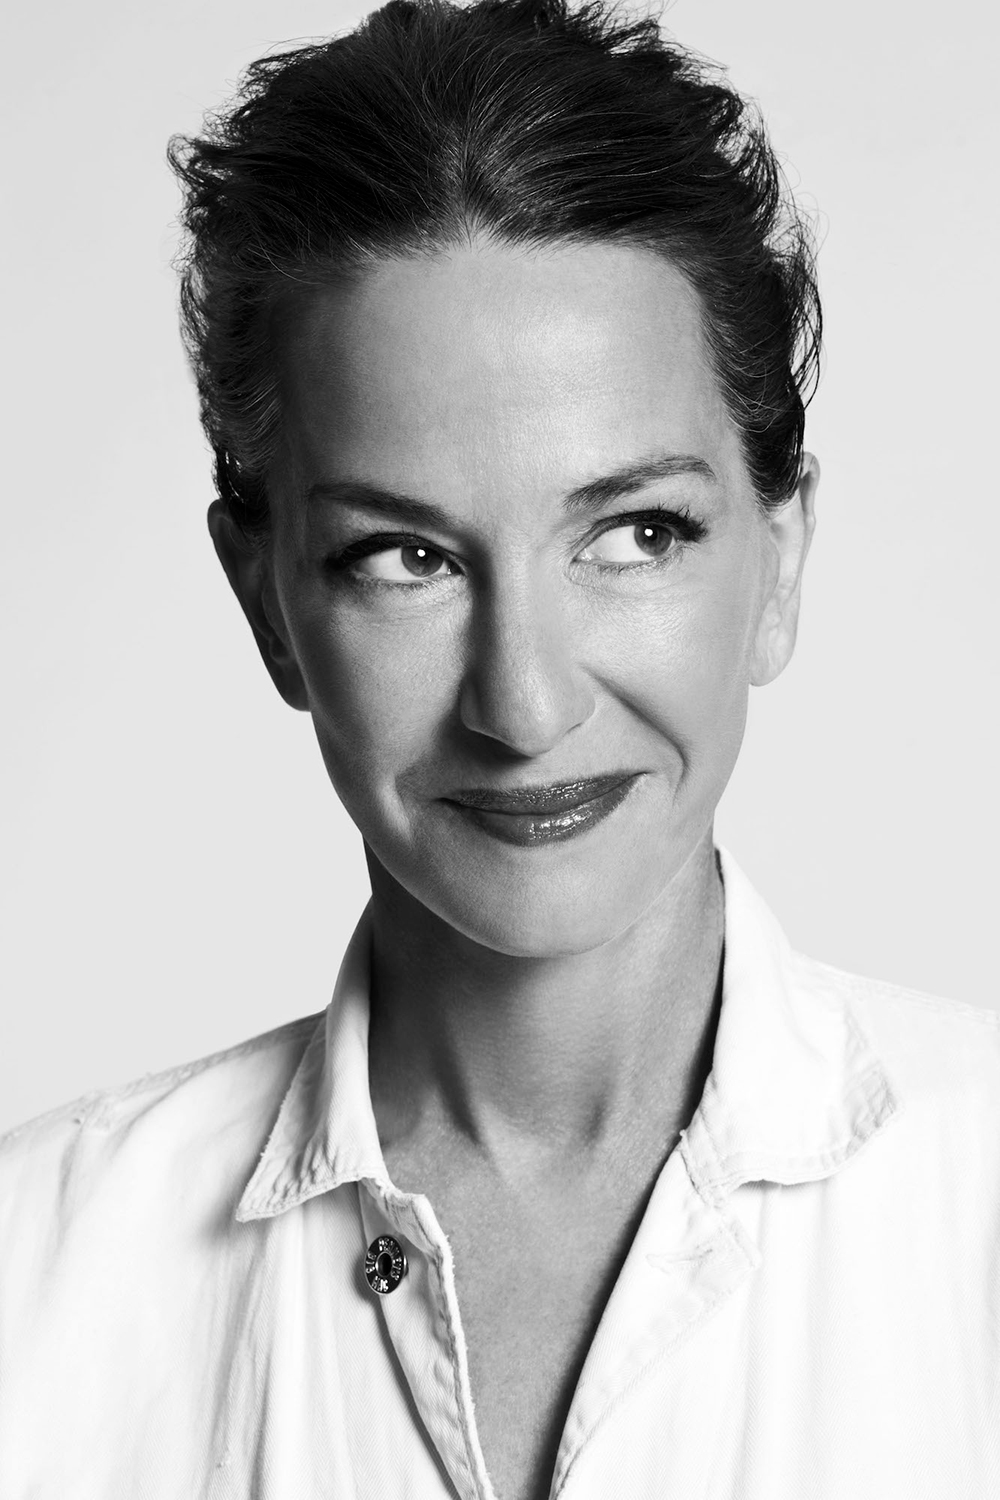 Cynthia Rowley. Photograph by Nigel Barker and courtesy of Cynthia Rowley.